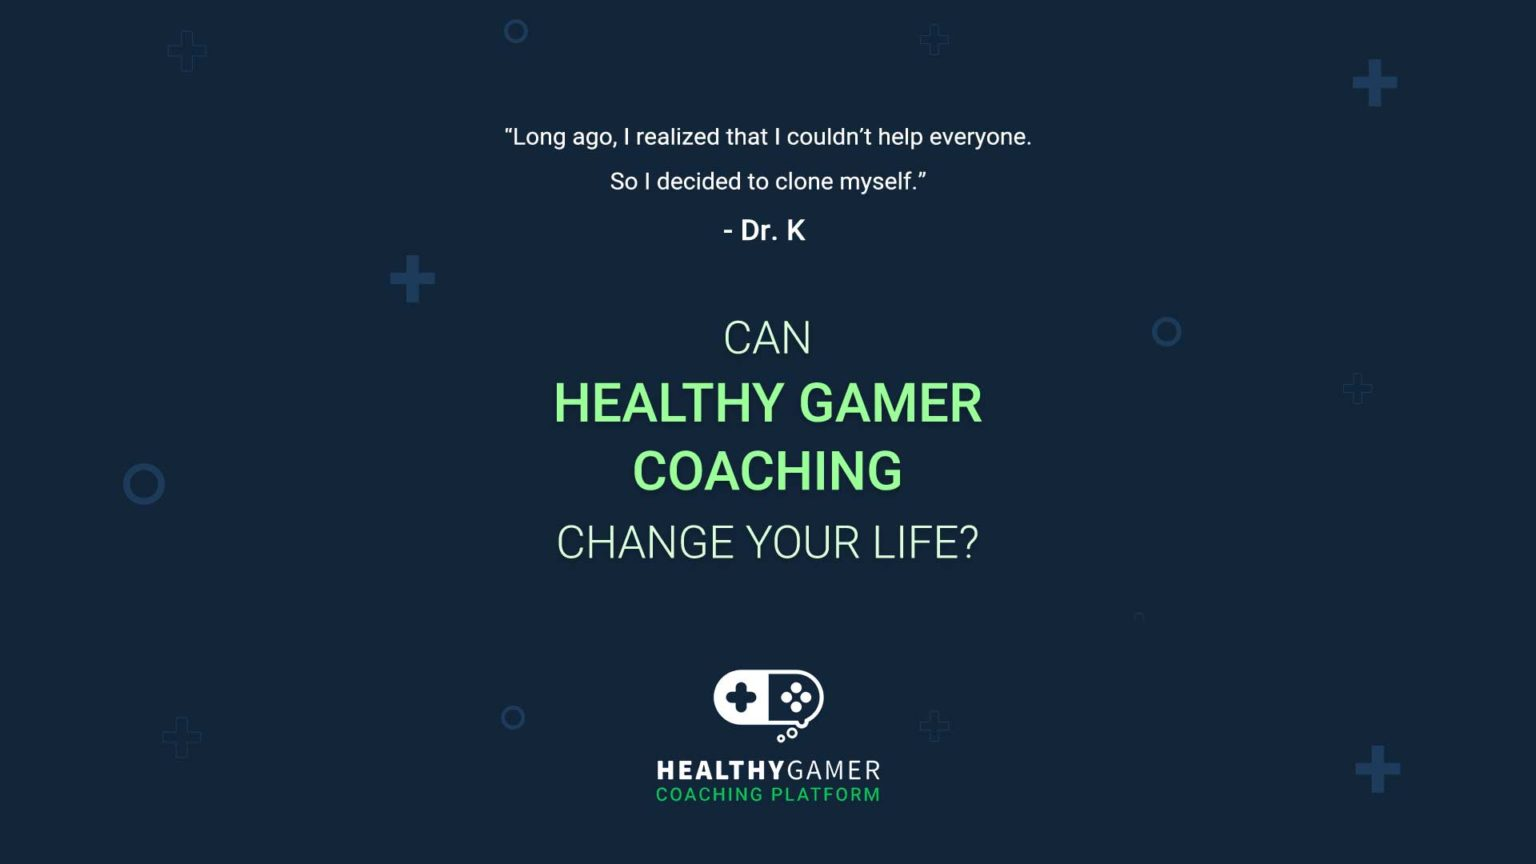 How Can Healthy Gamer Coaching Change my Life?